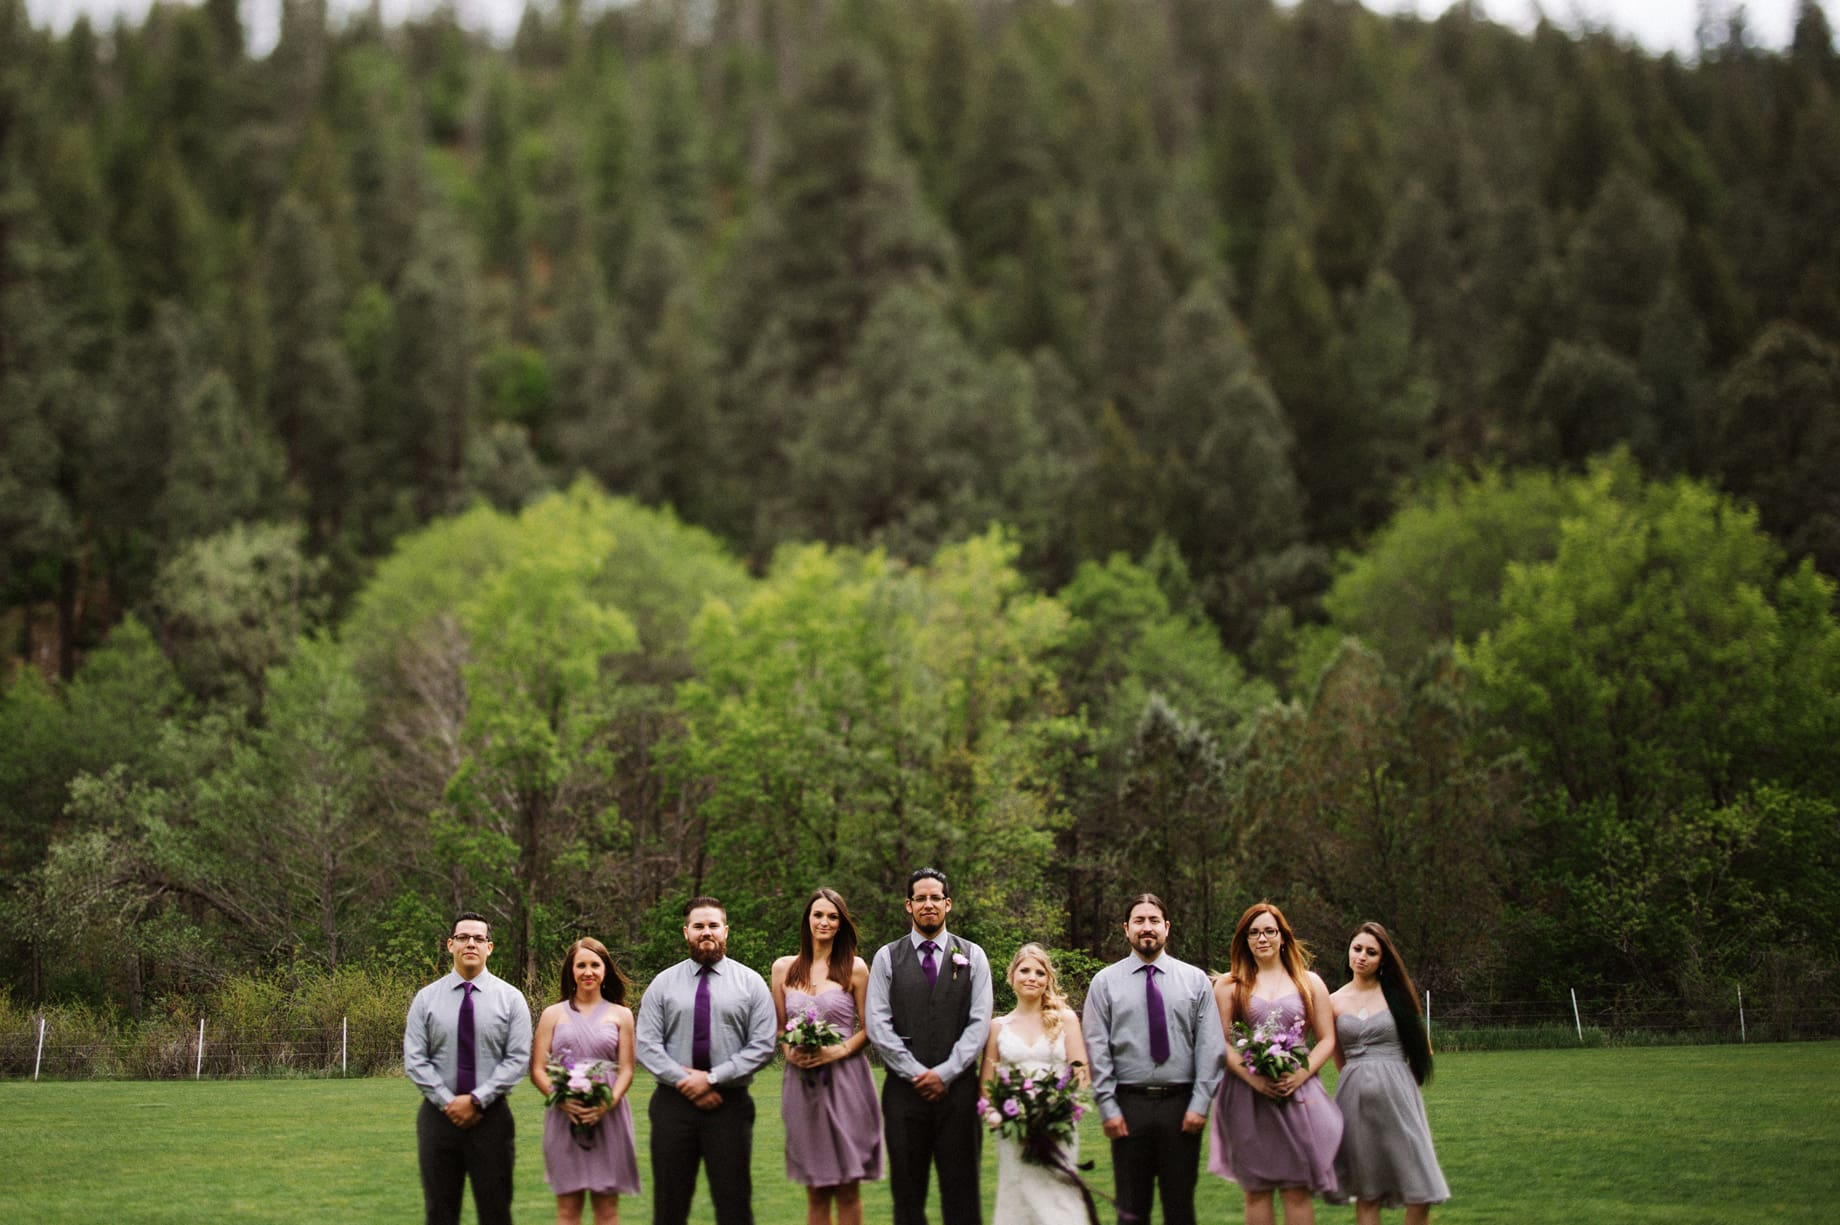 purple wedding party outfit